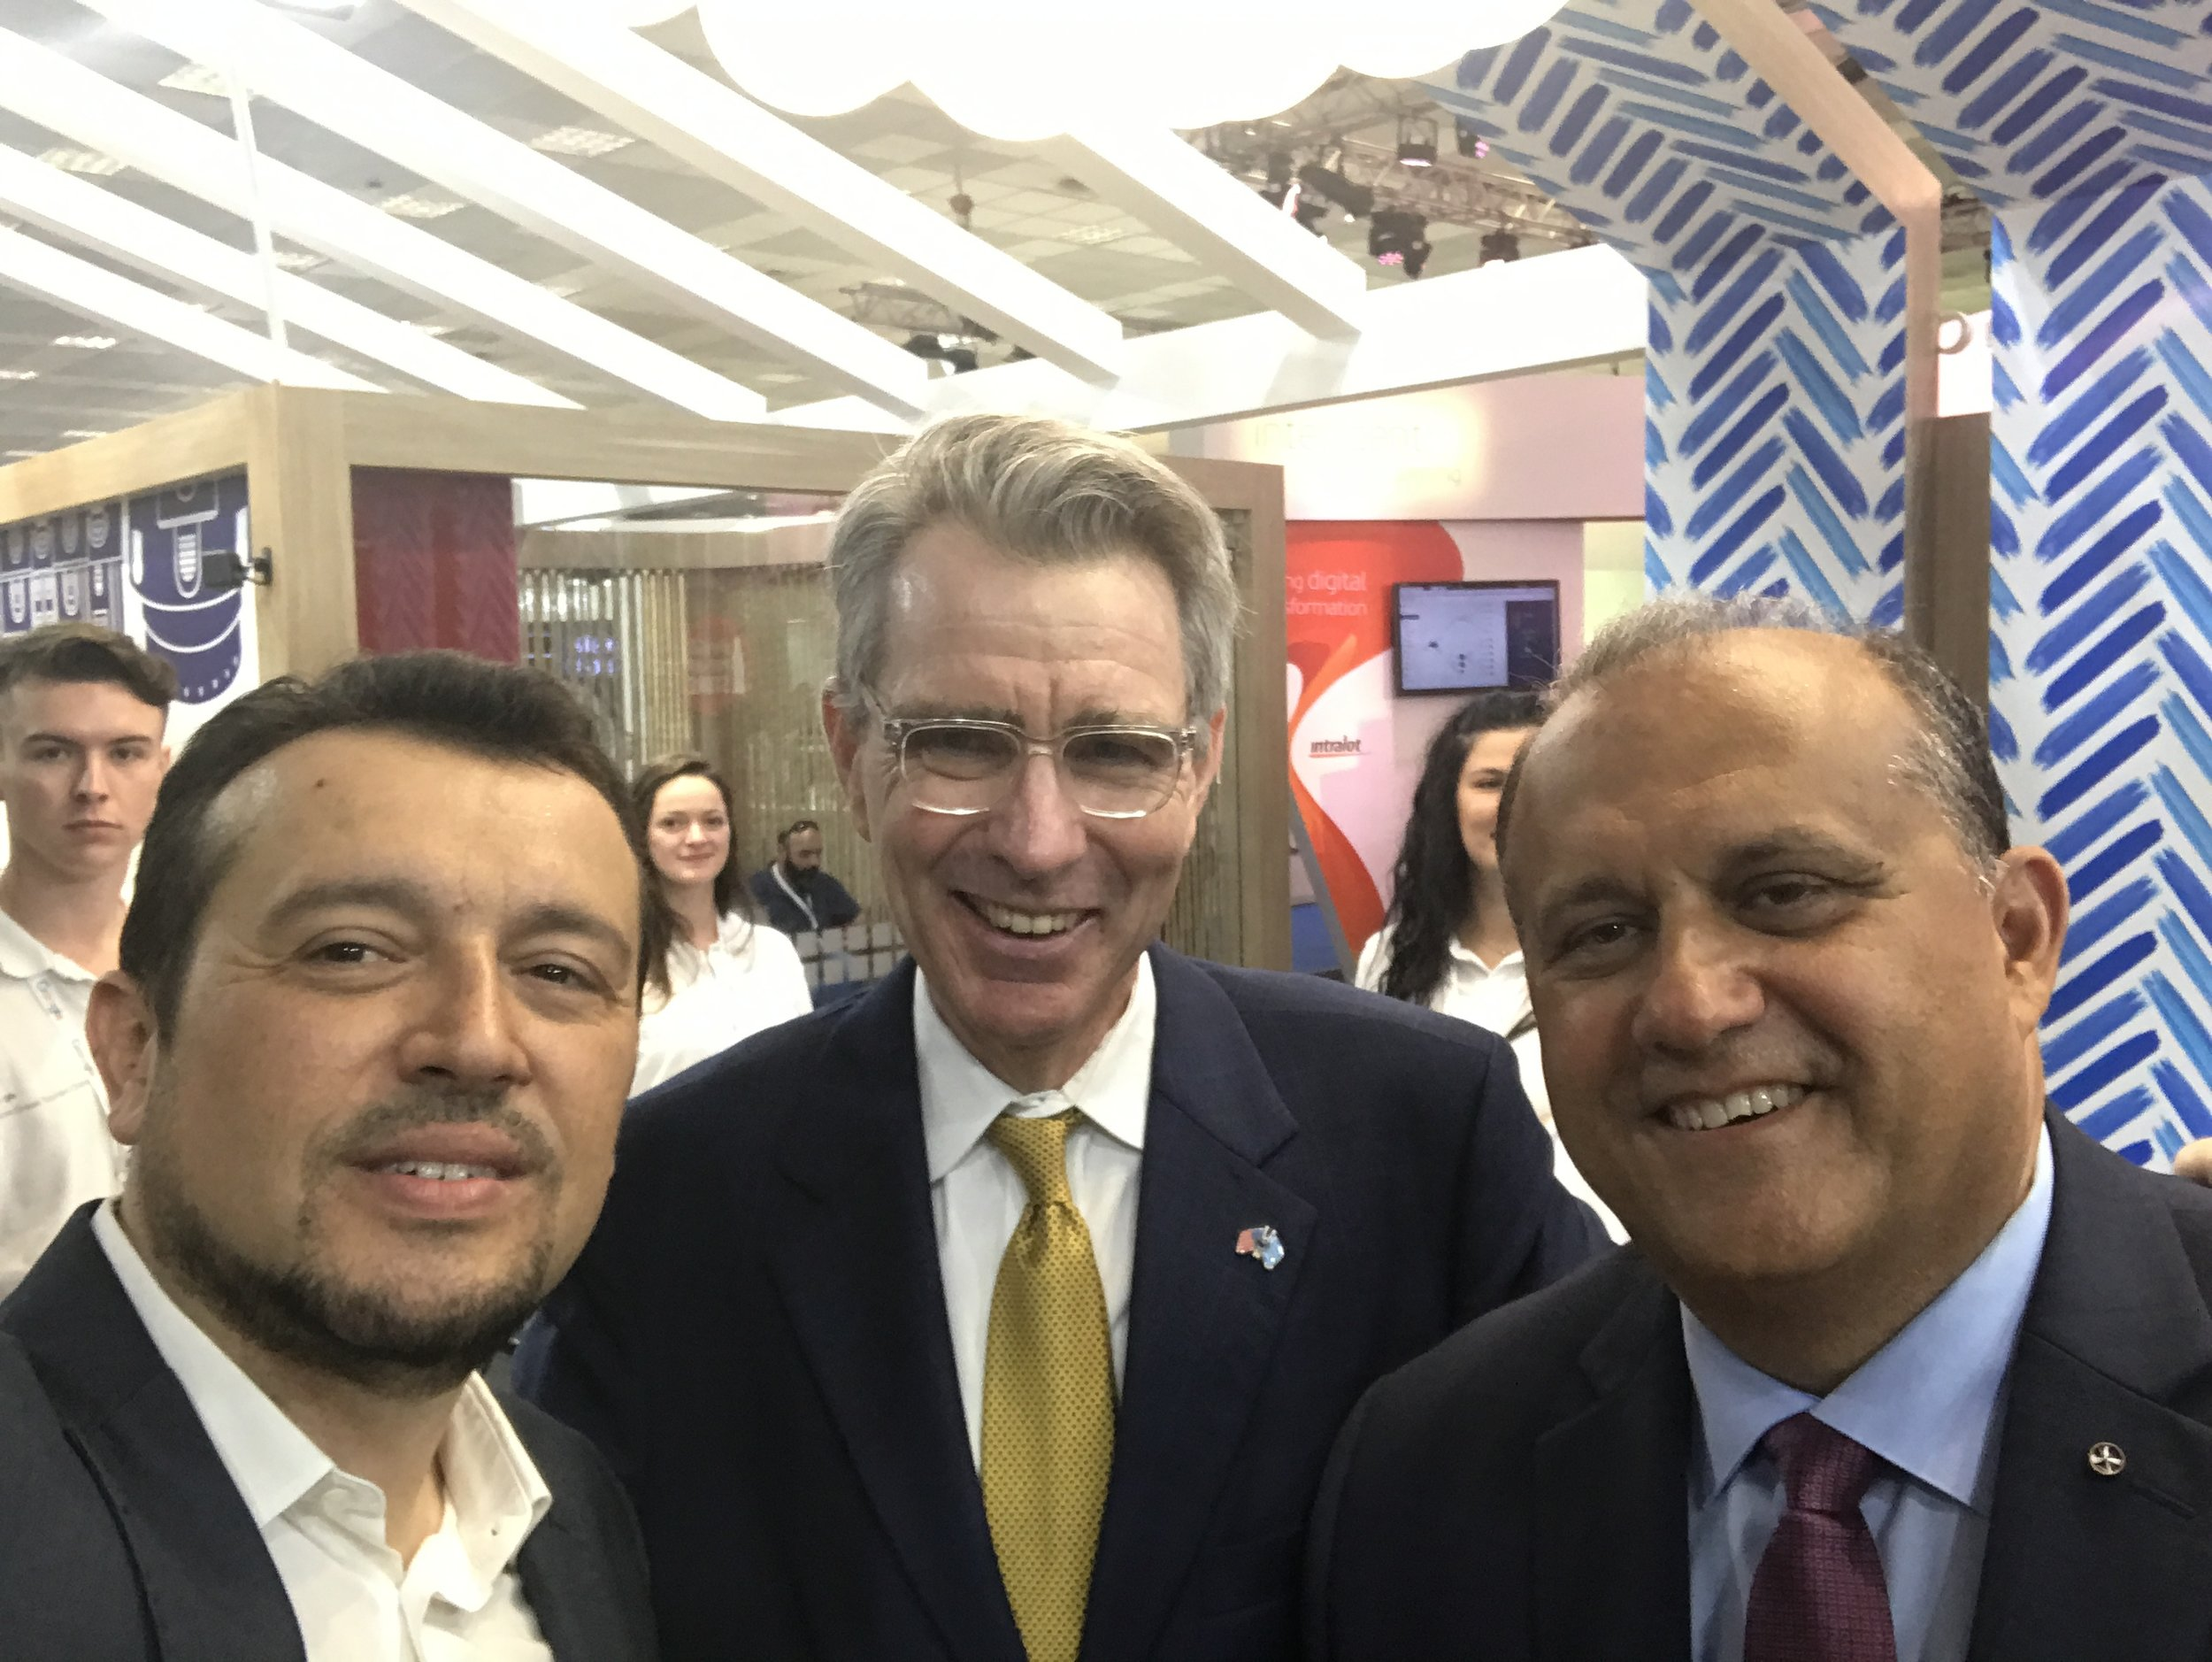 (L-R) Minister Nikos Pappas, Minister of Digital Policy, Telecommunications and Information; US Ambassador to Greece, Geoffrey Pyatt; and AHI President, Nick Larigakis at the U.S. pavilion.